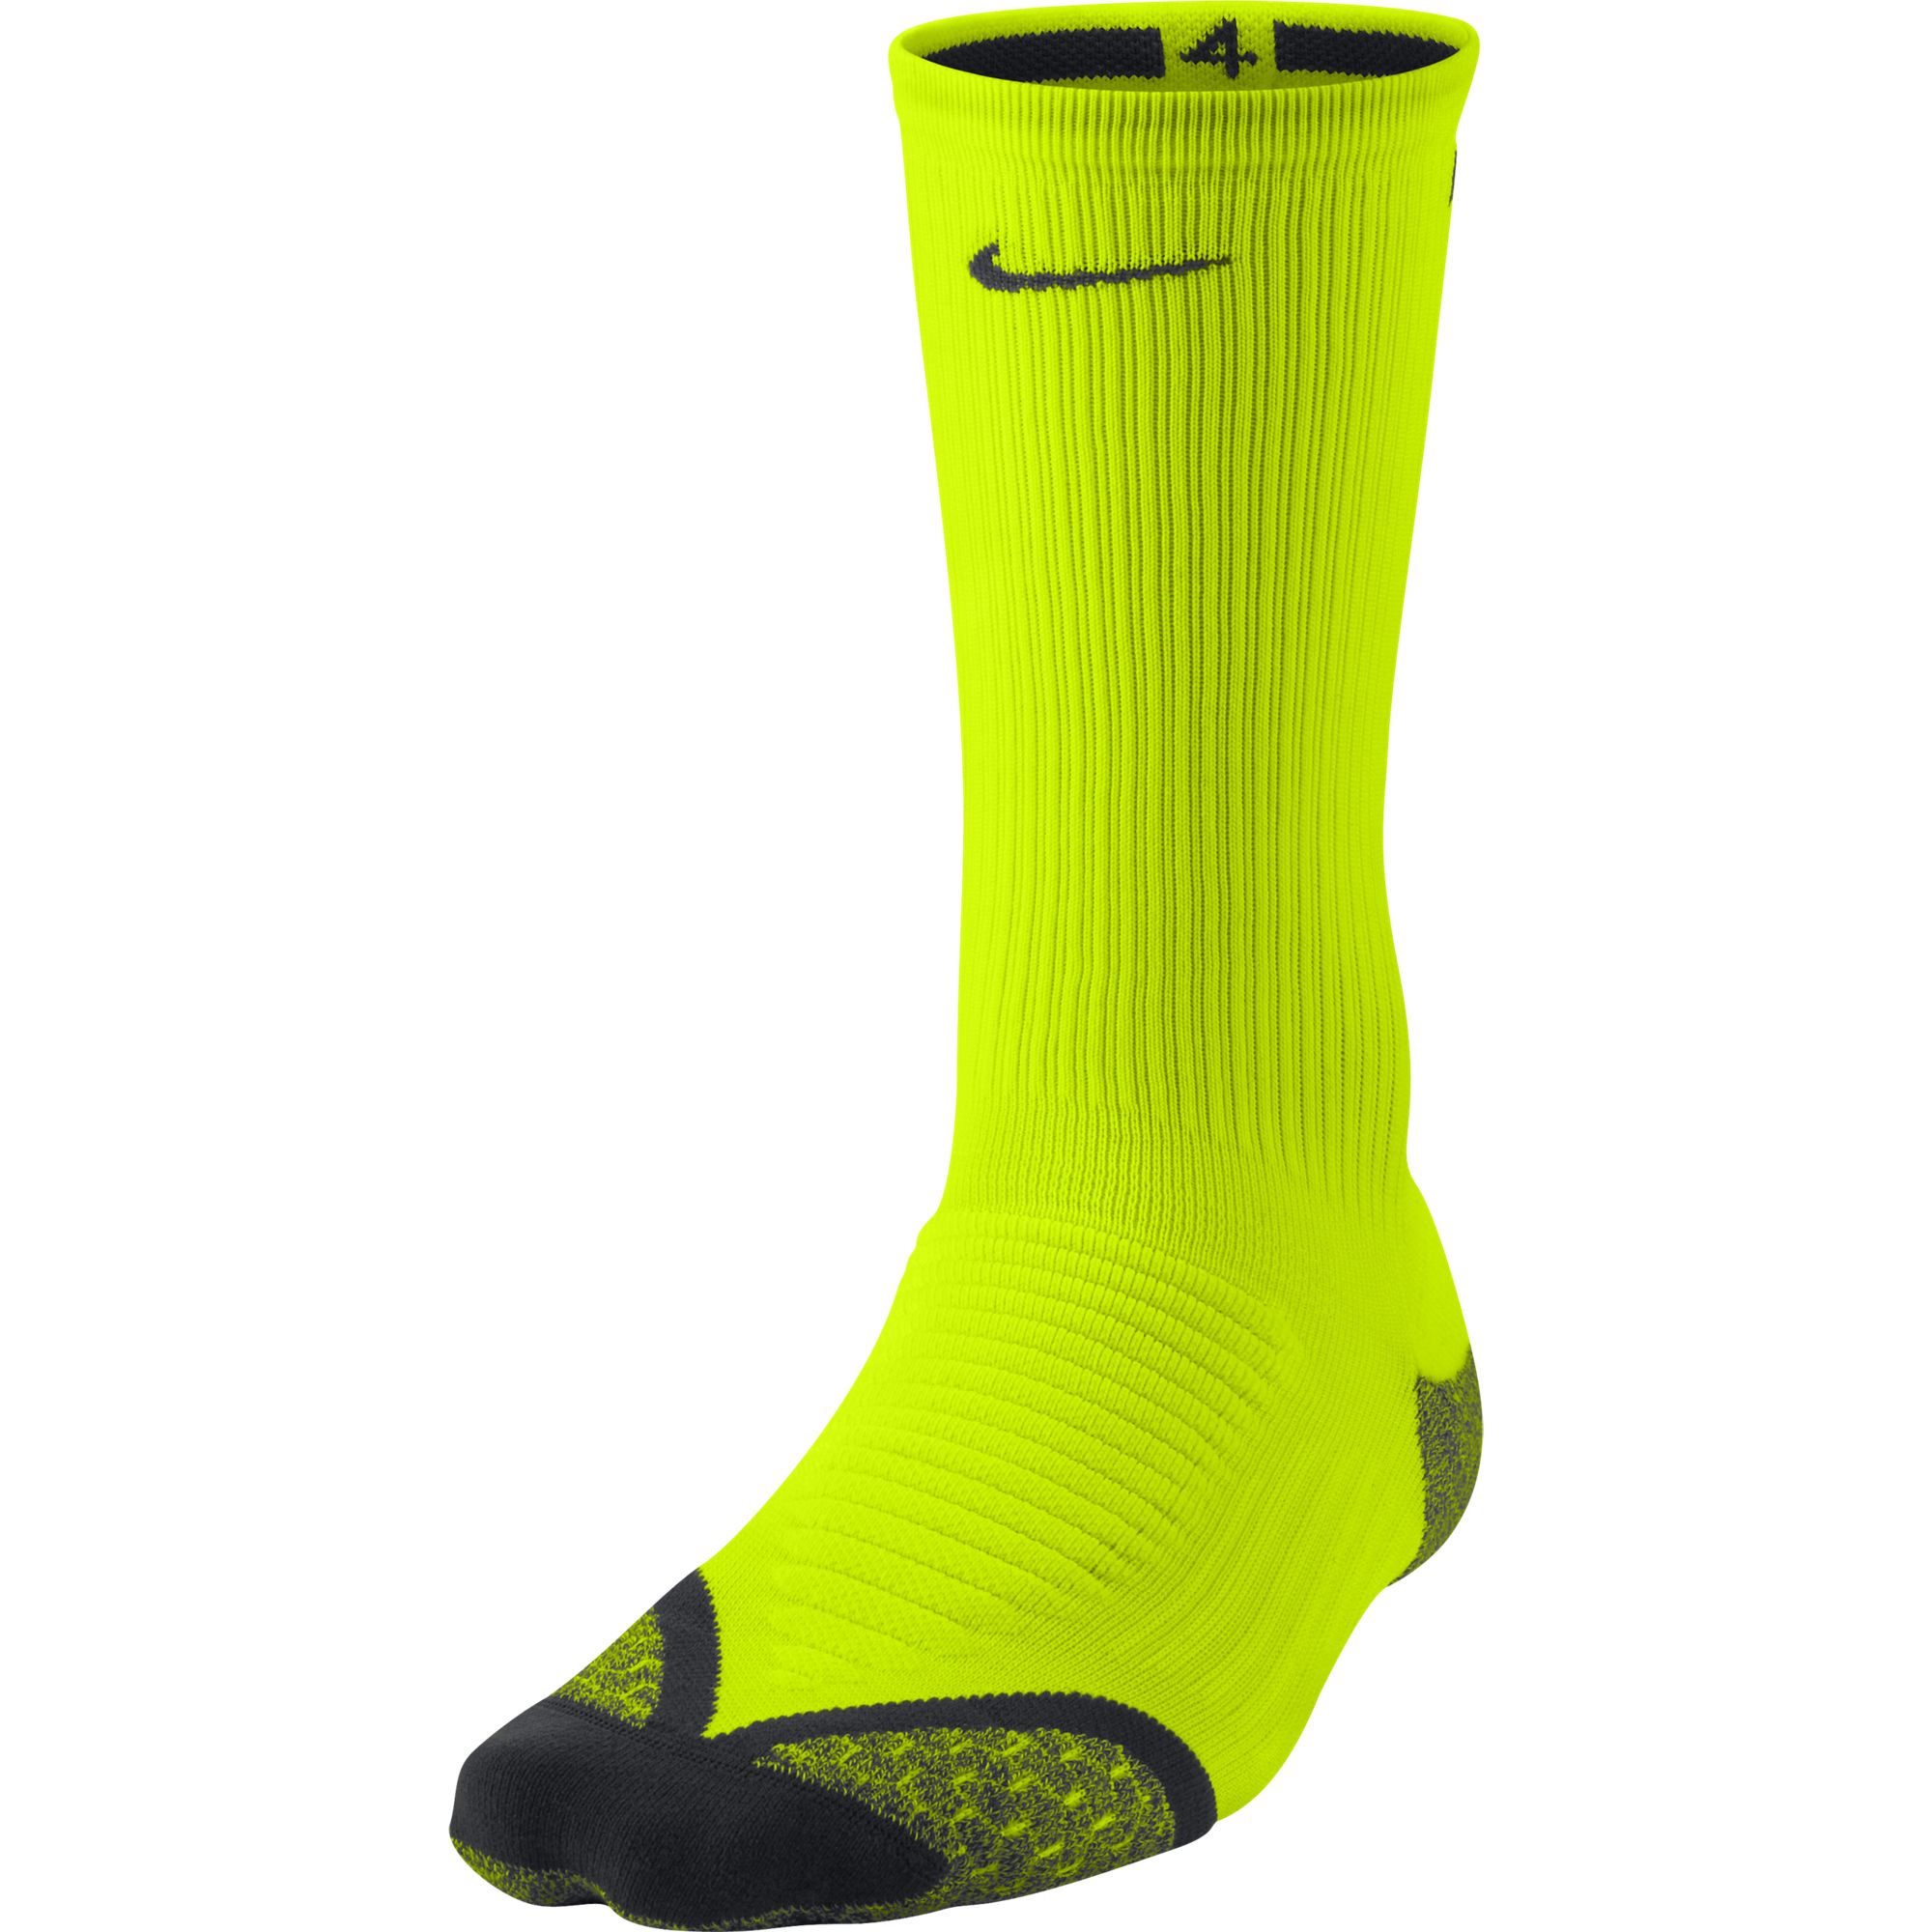 Nike Носки Nike Elite Cushioned Crew, 1 пара чулок д щитков nike guard lock elite sleeve su12 se0173 011 m чёрный